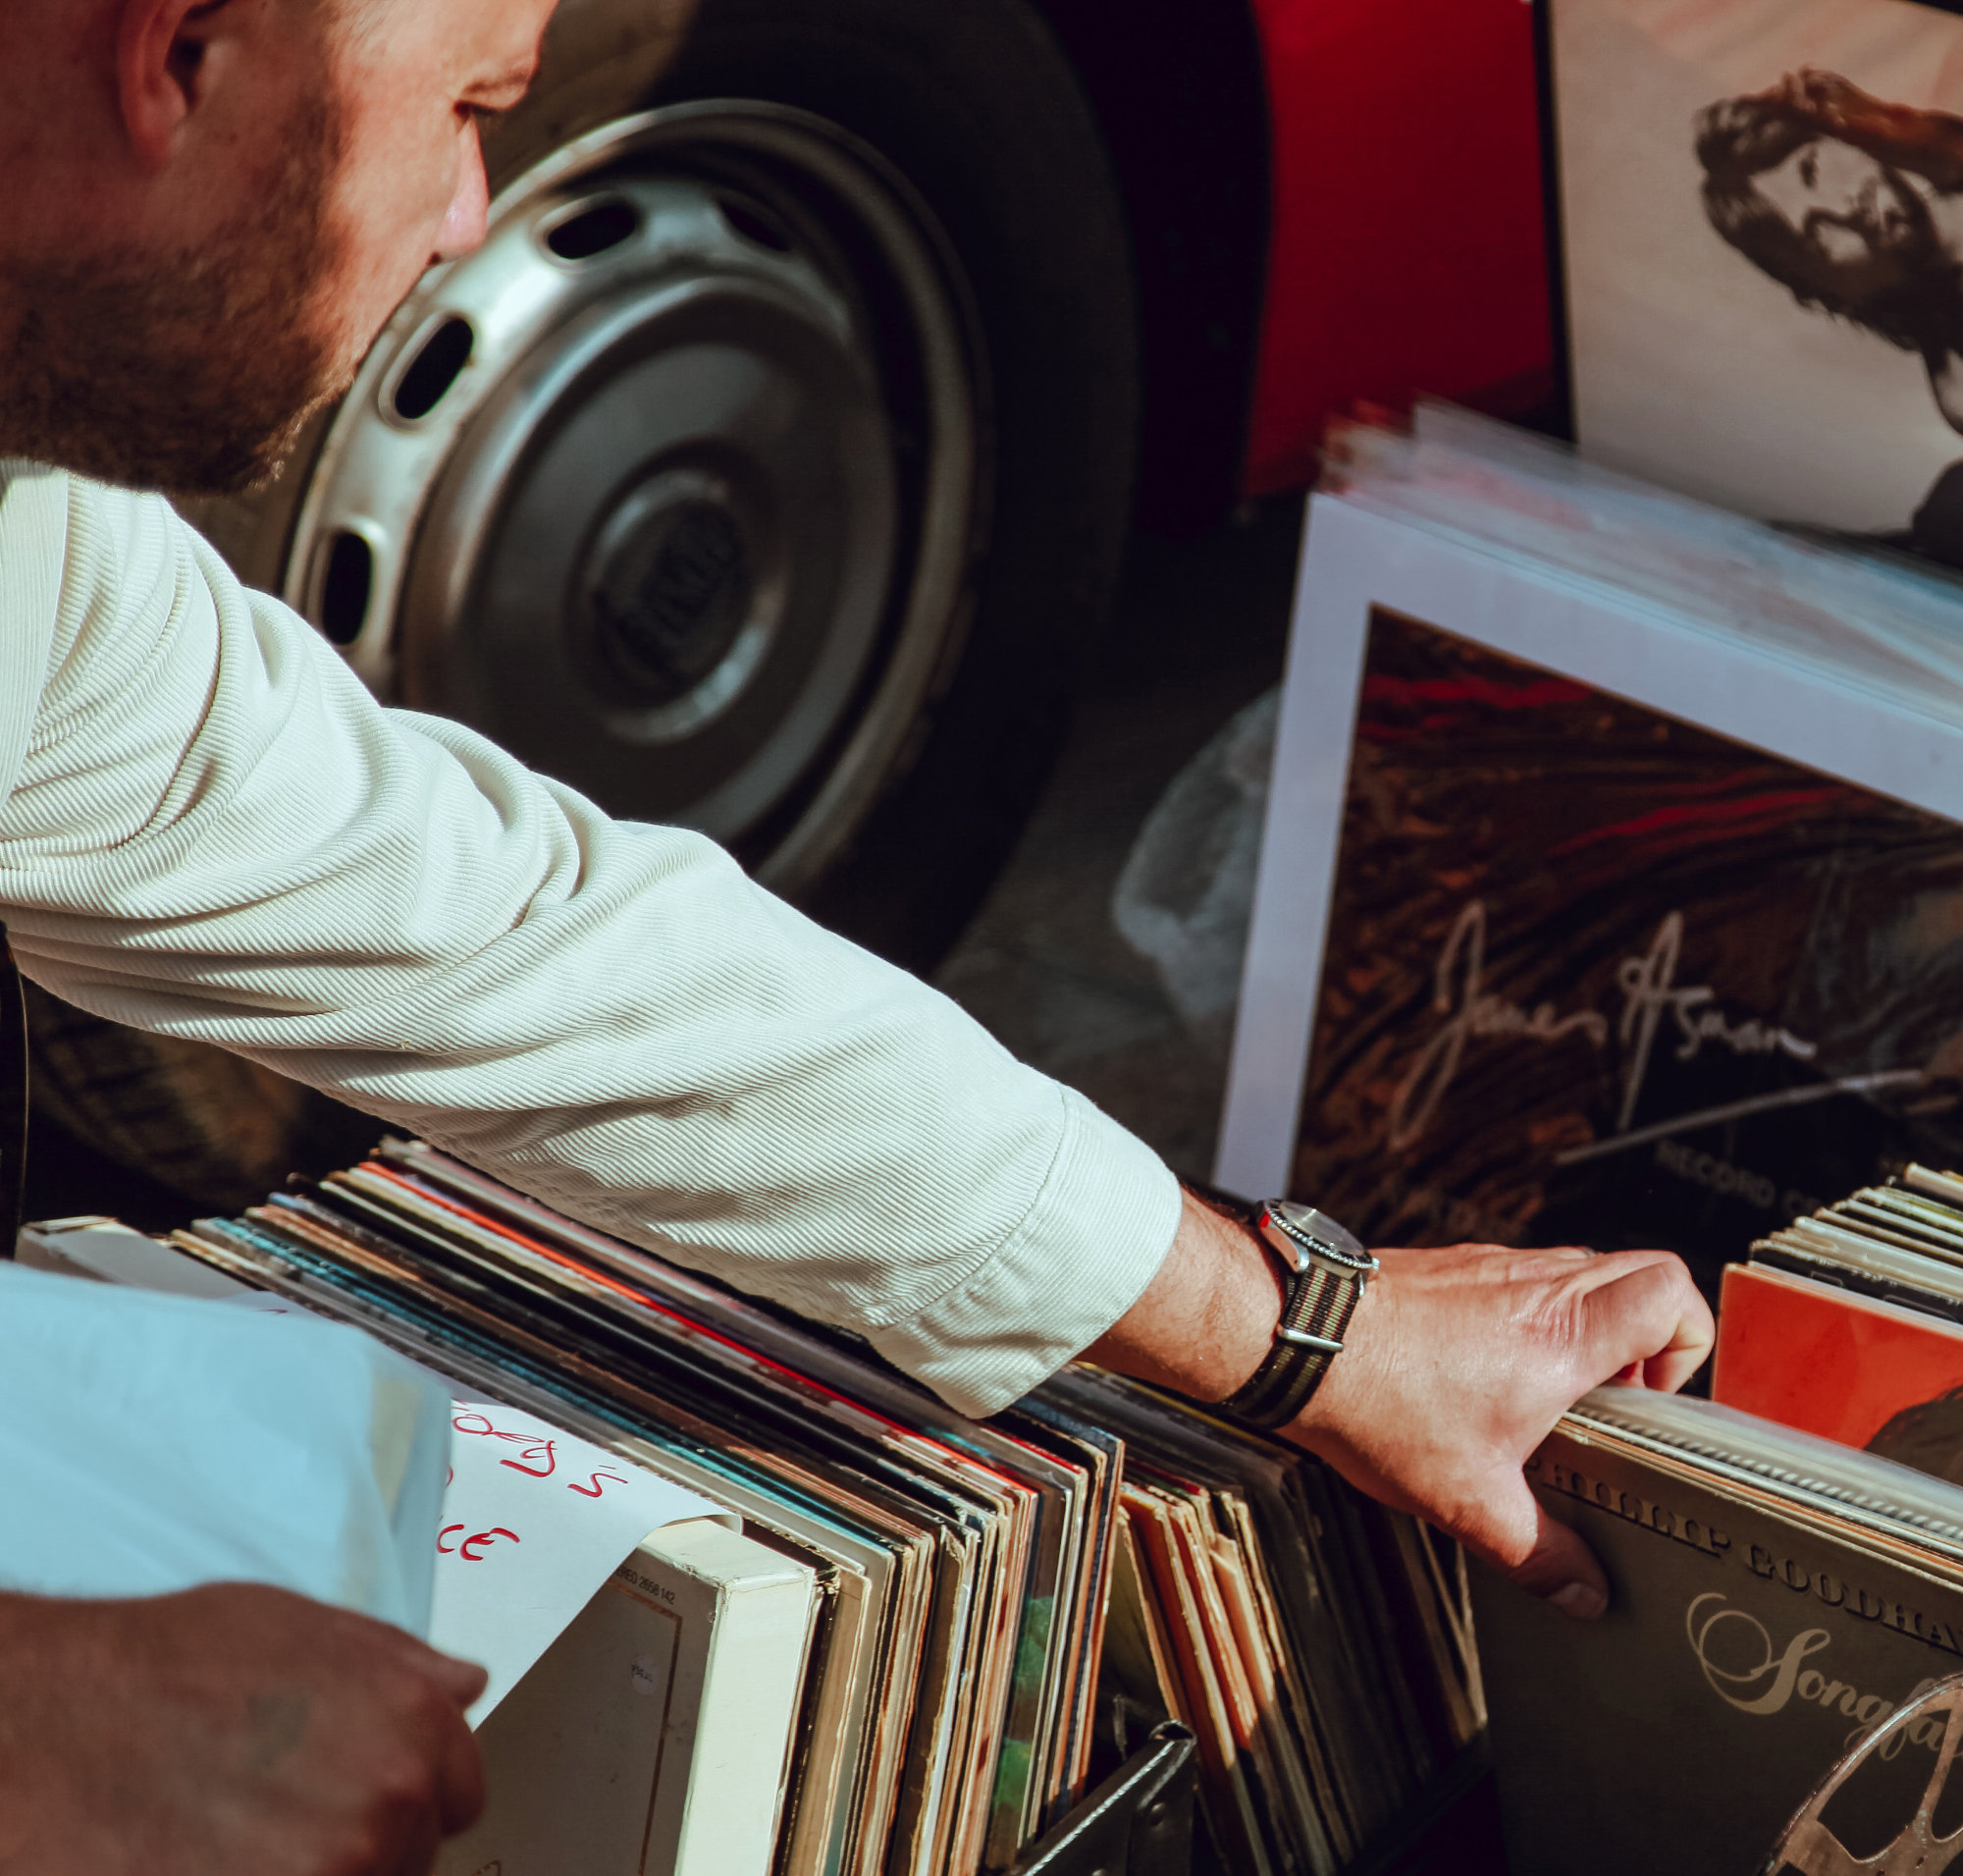 Man searching through vinyl records